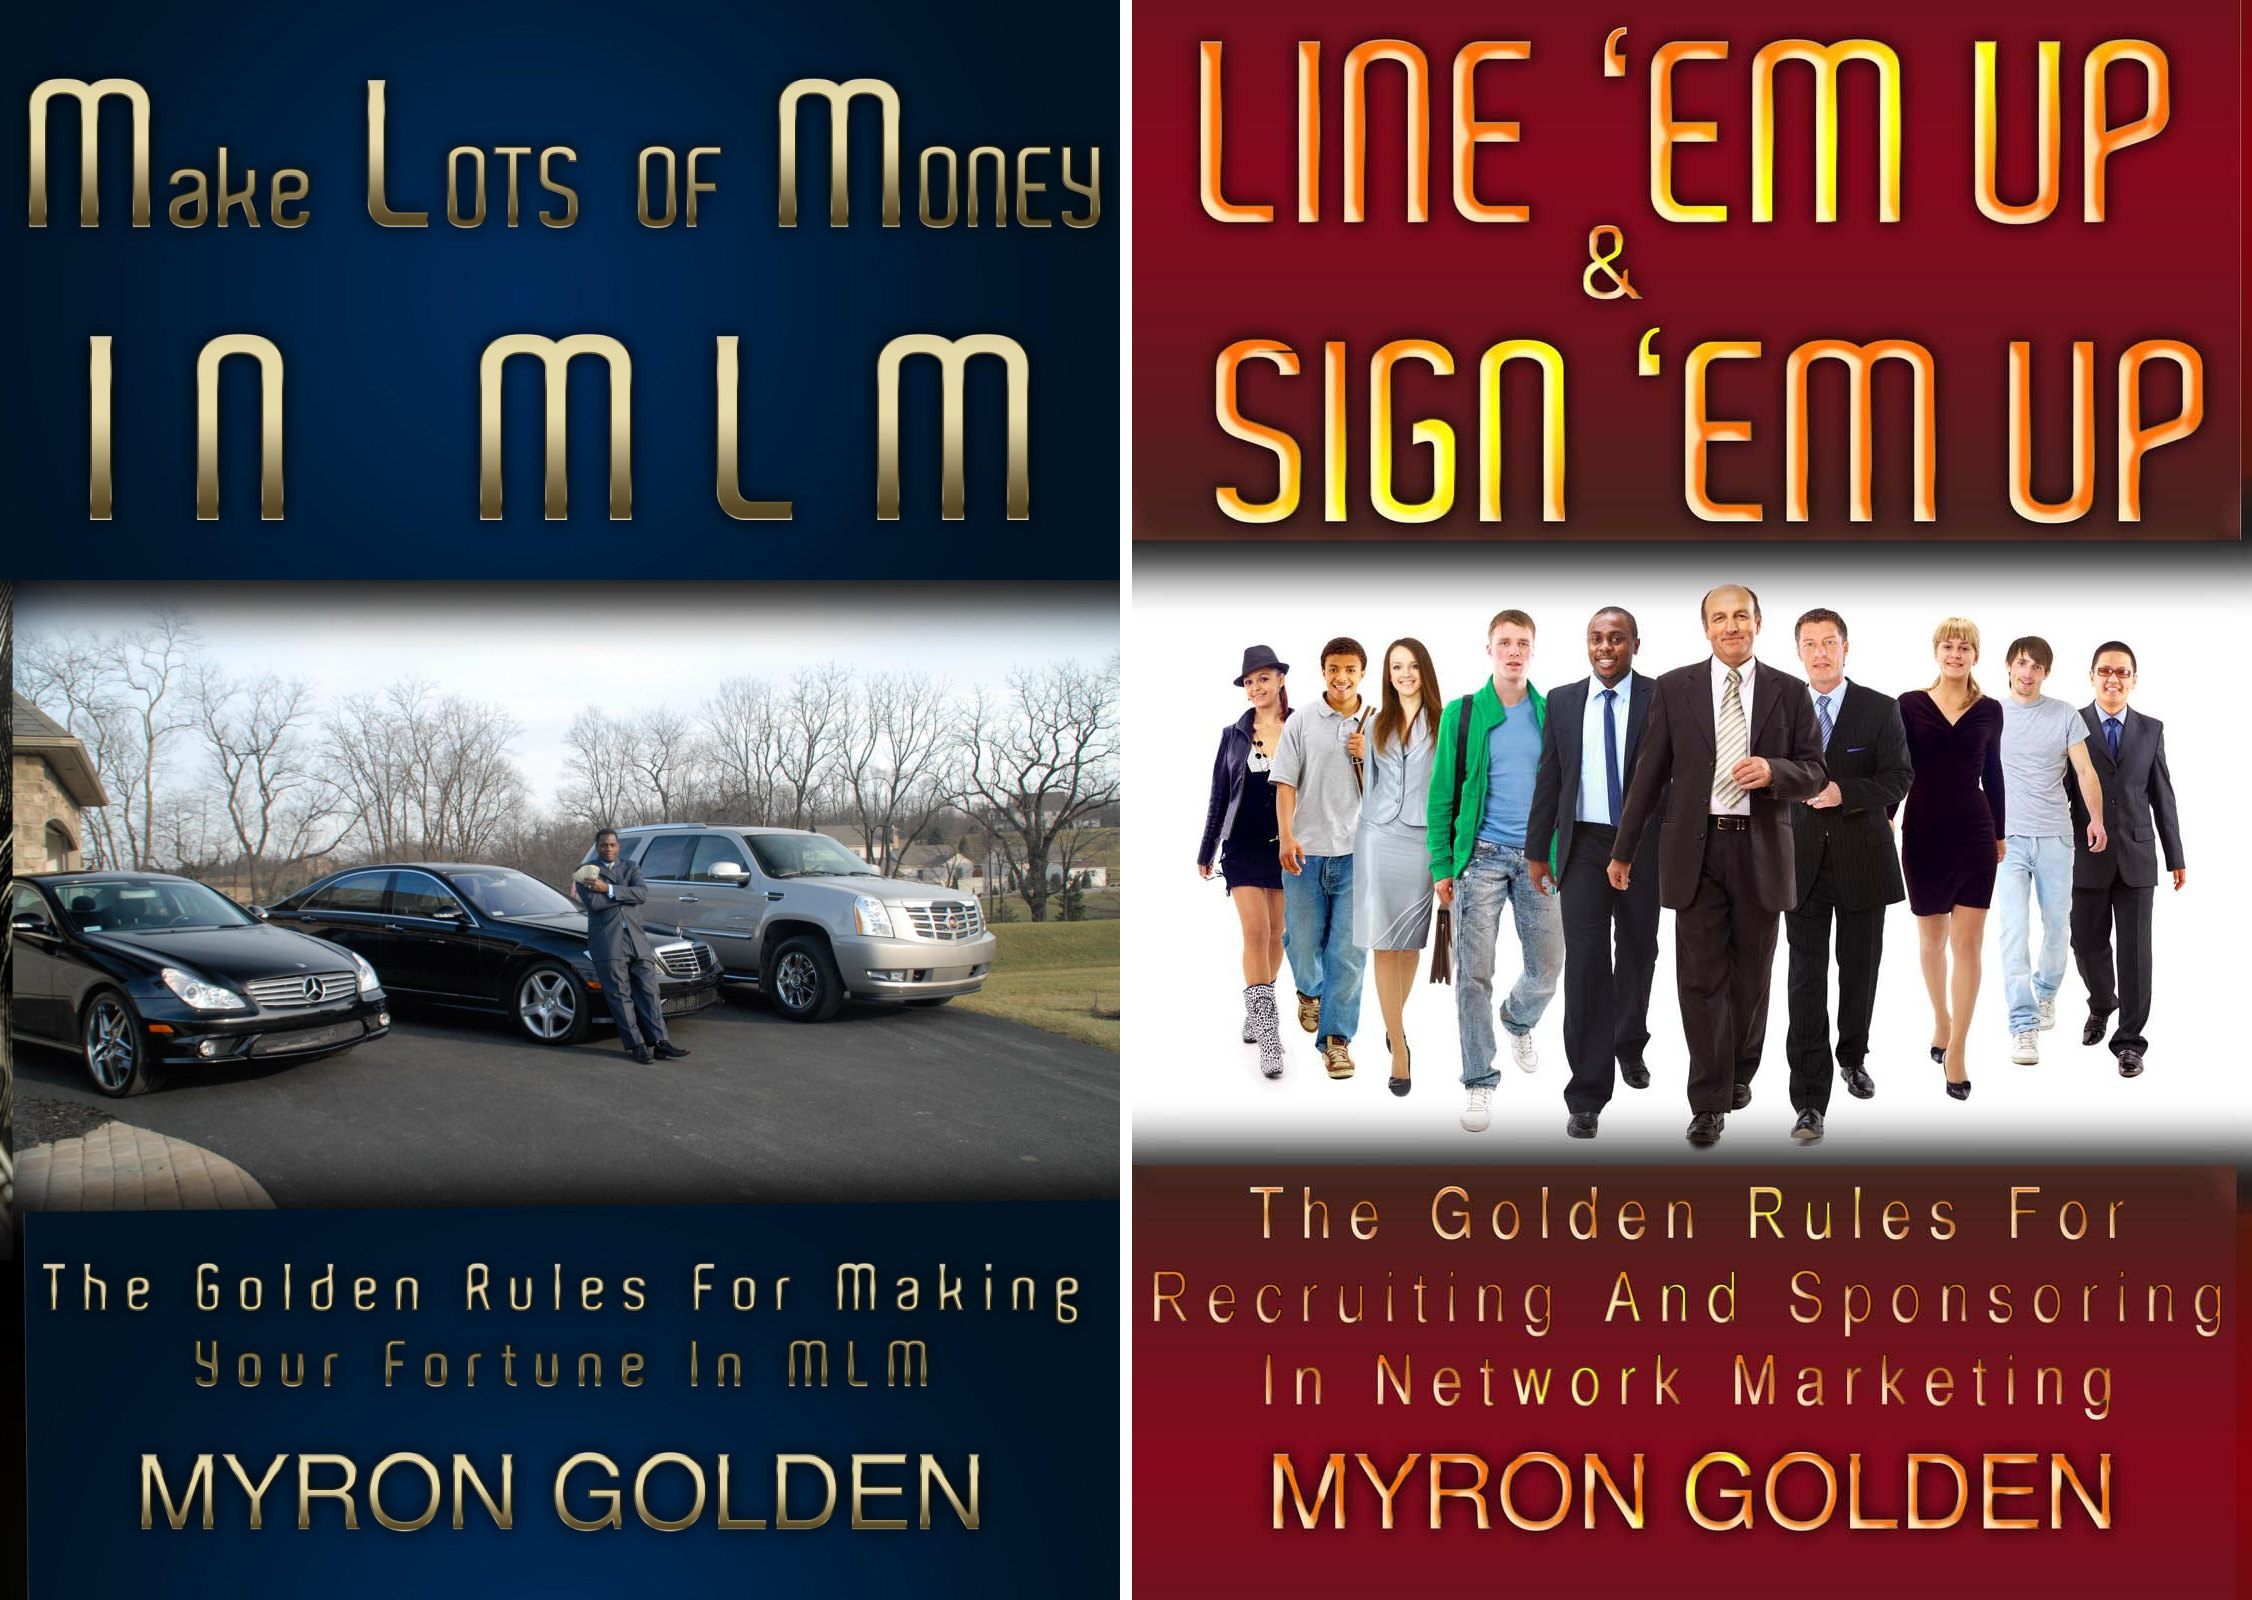 The Golden Rules For Making Your Fortune In MLM (2 Book Series)